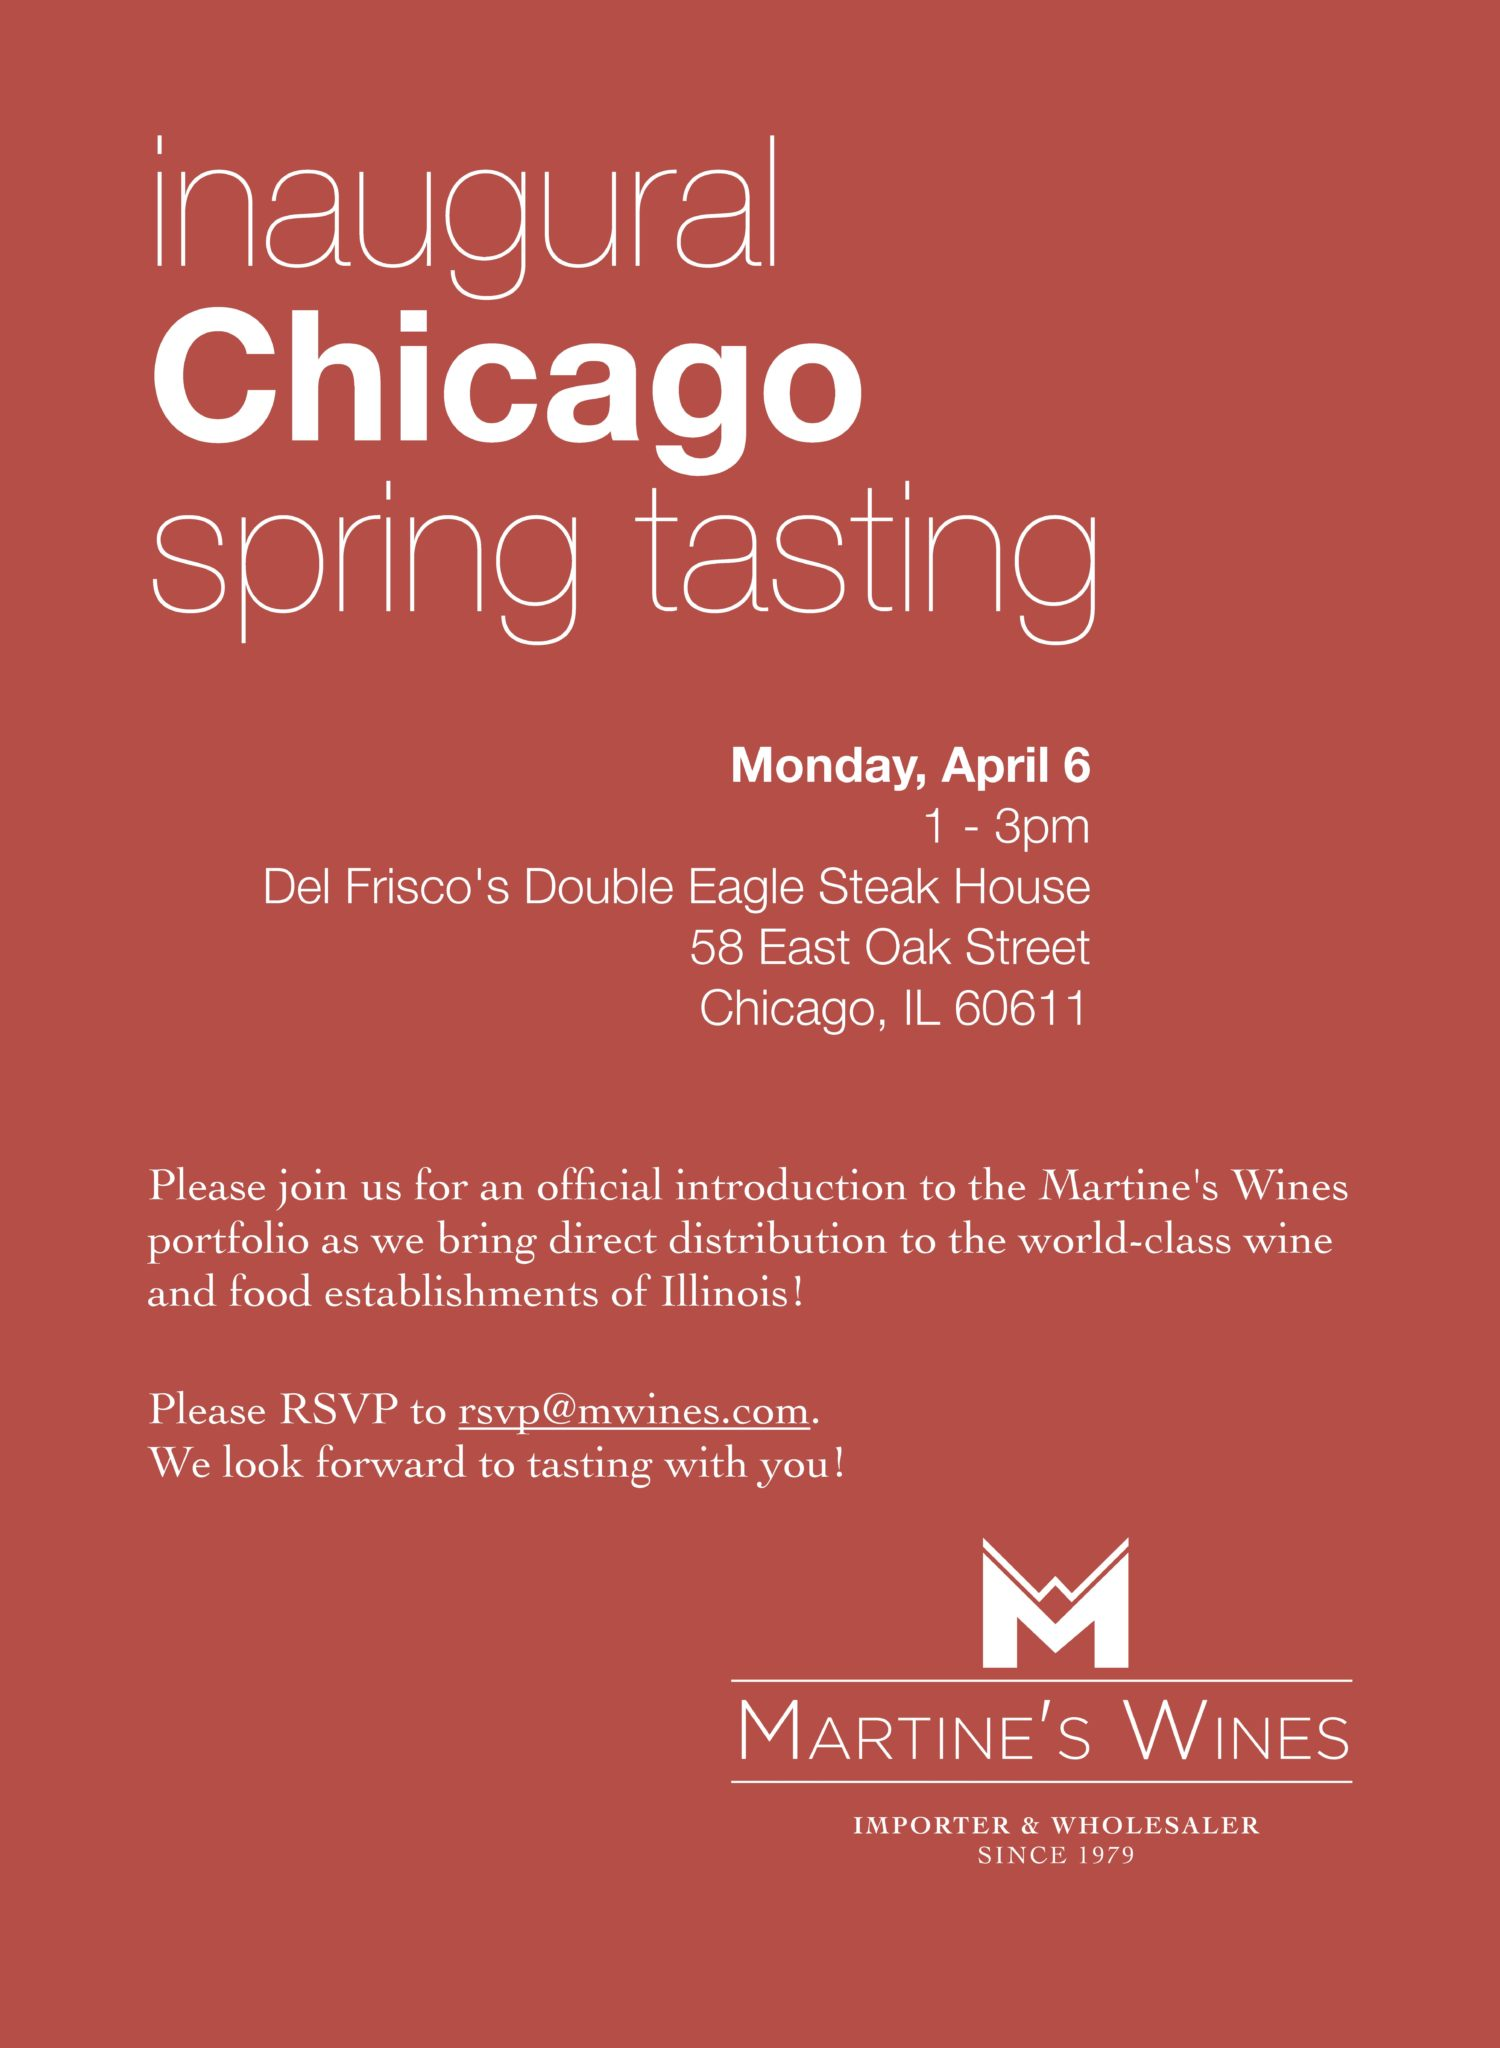 Martine's Wines Inaugural Chicago Spring Tasting 2015 Invite- PRINT_Page_1